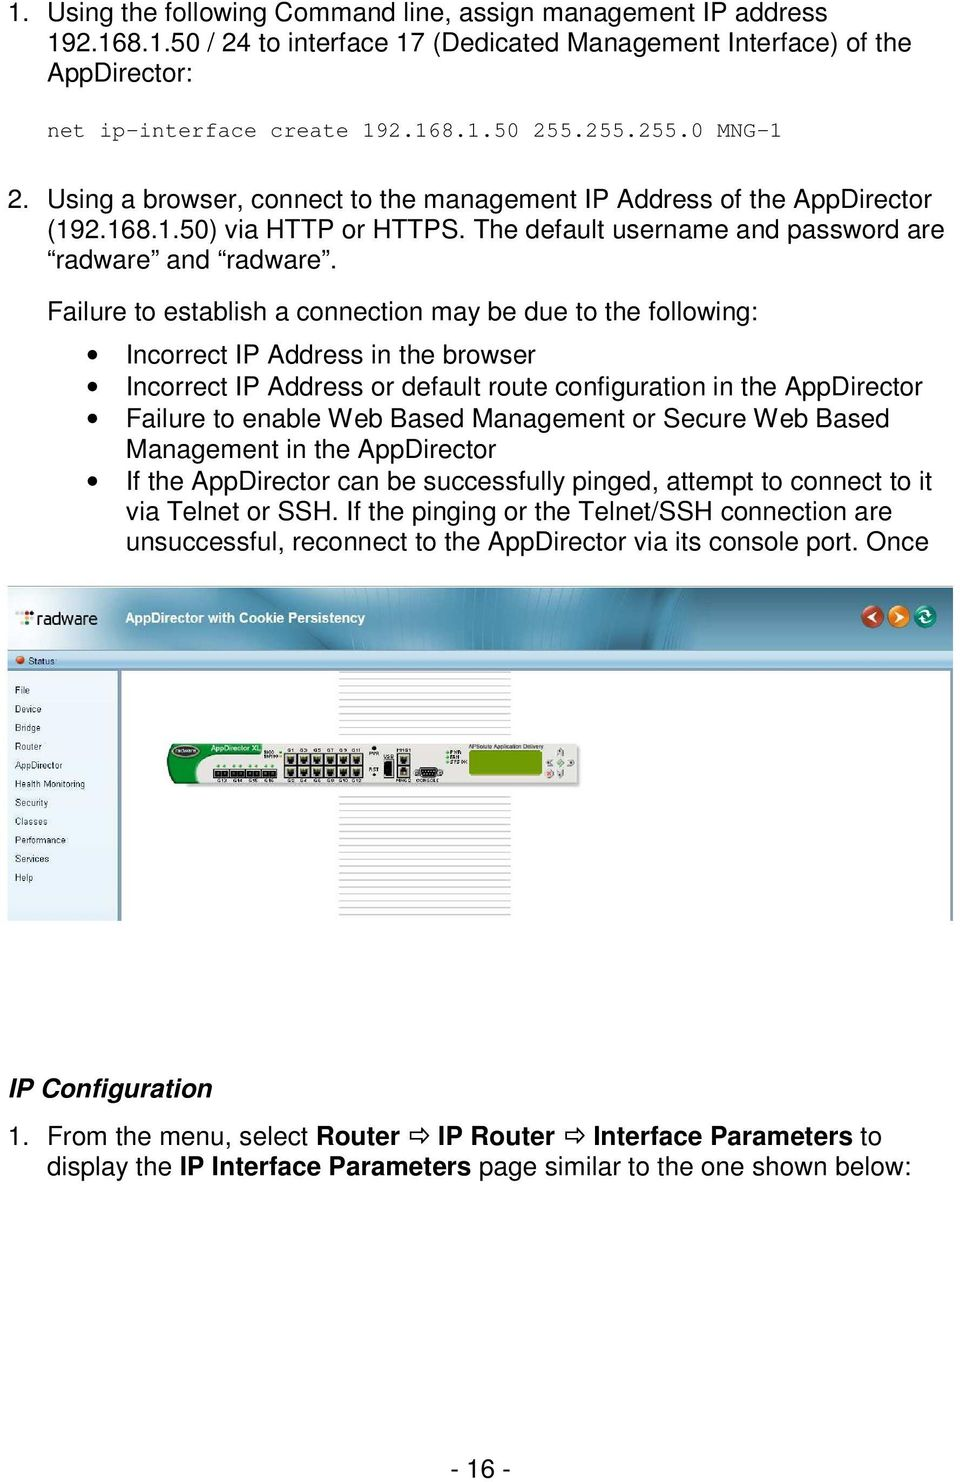 Failure to establish a connection may be due to the following: Incorrect IP Address in the browser Incorrect IP Address or default route configuration in the AppDirector Failure to enable Web Based